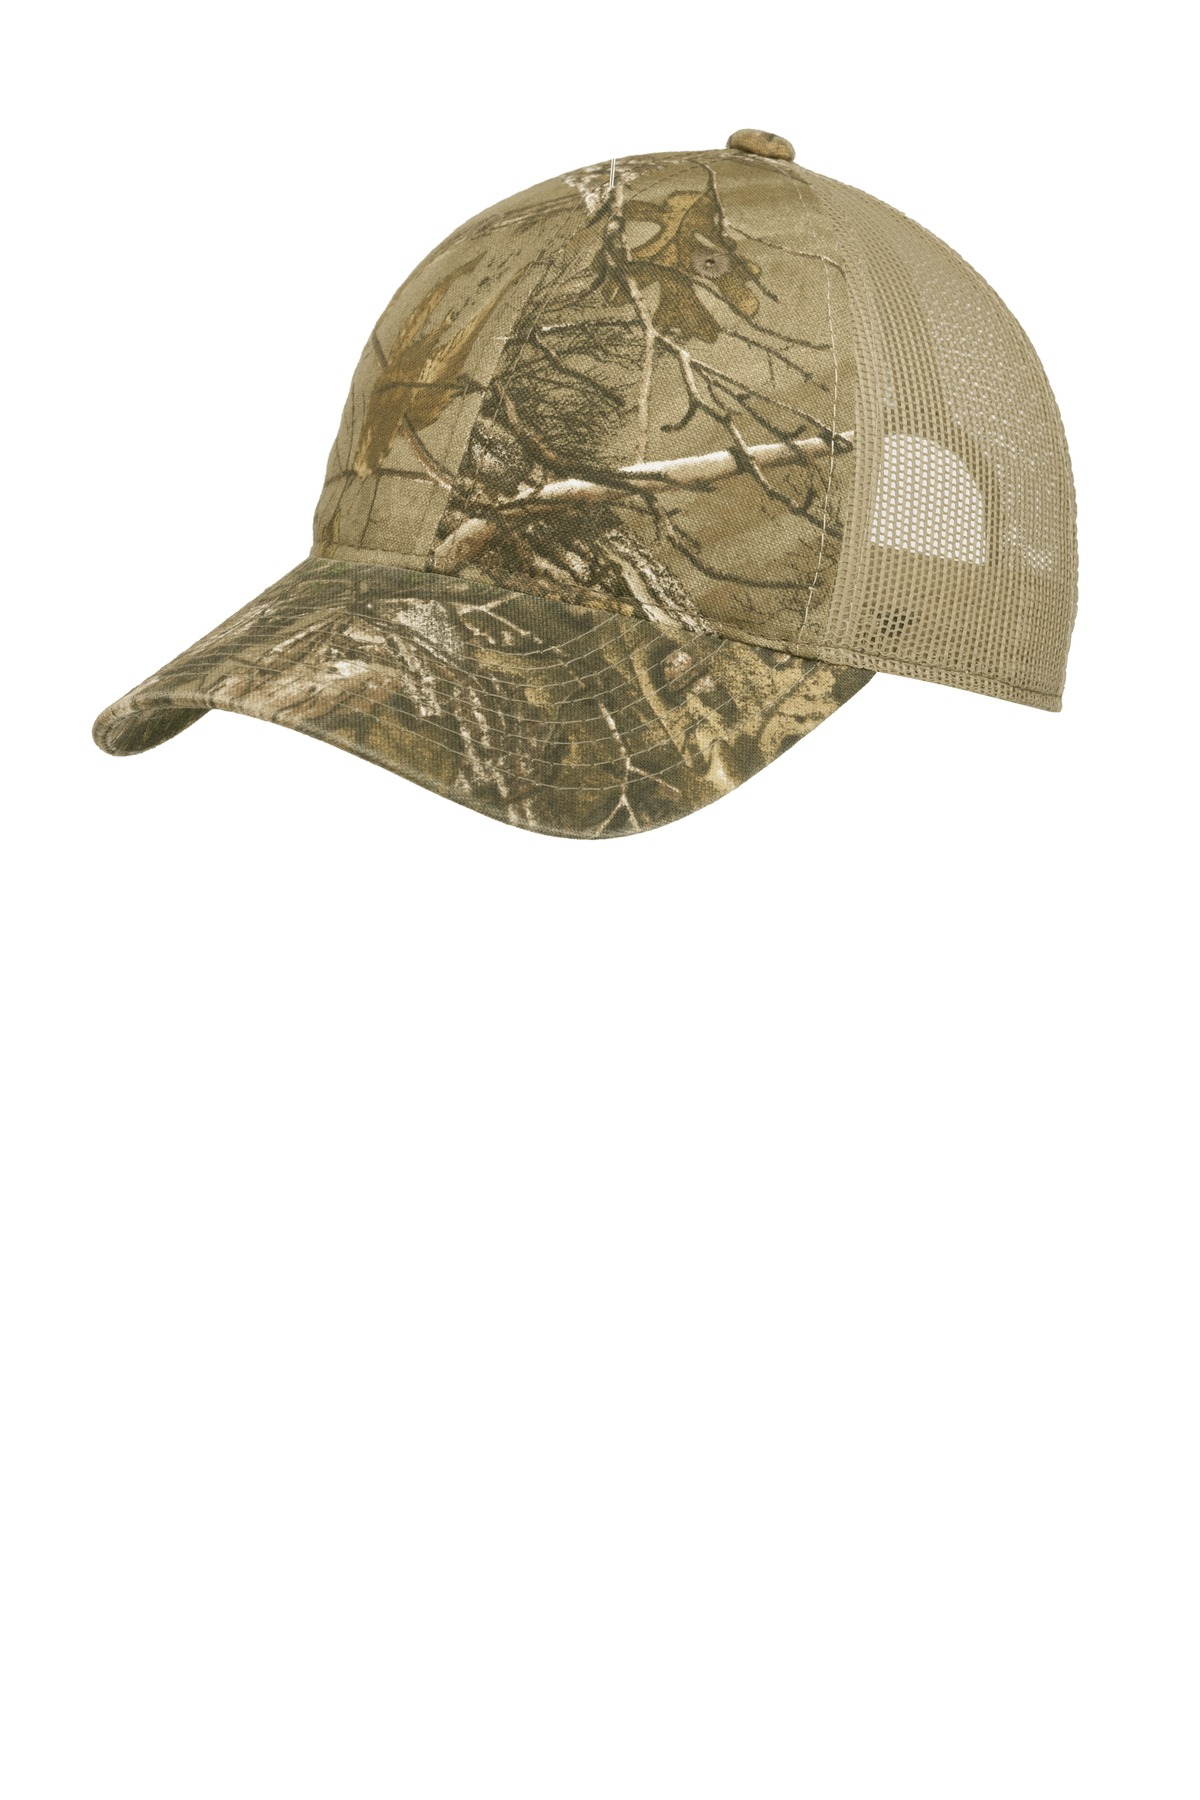 Port Authority ®  Unstructured Camouflage Mesh Back Cap. C929 - Realtree Xtra/ Tan